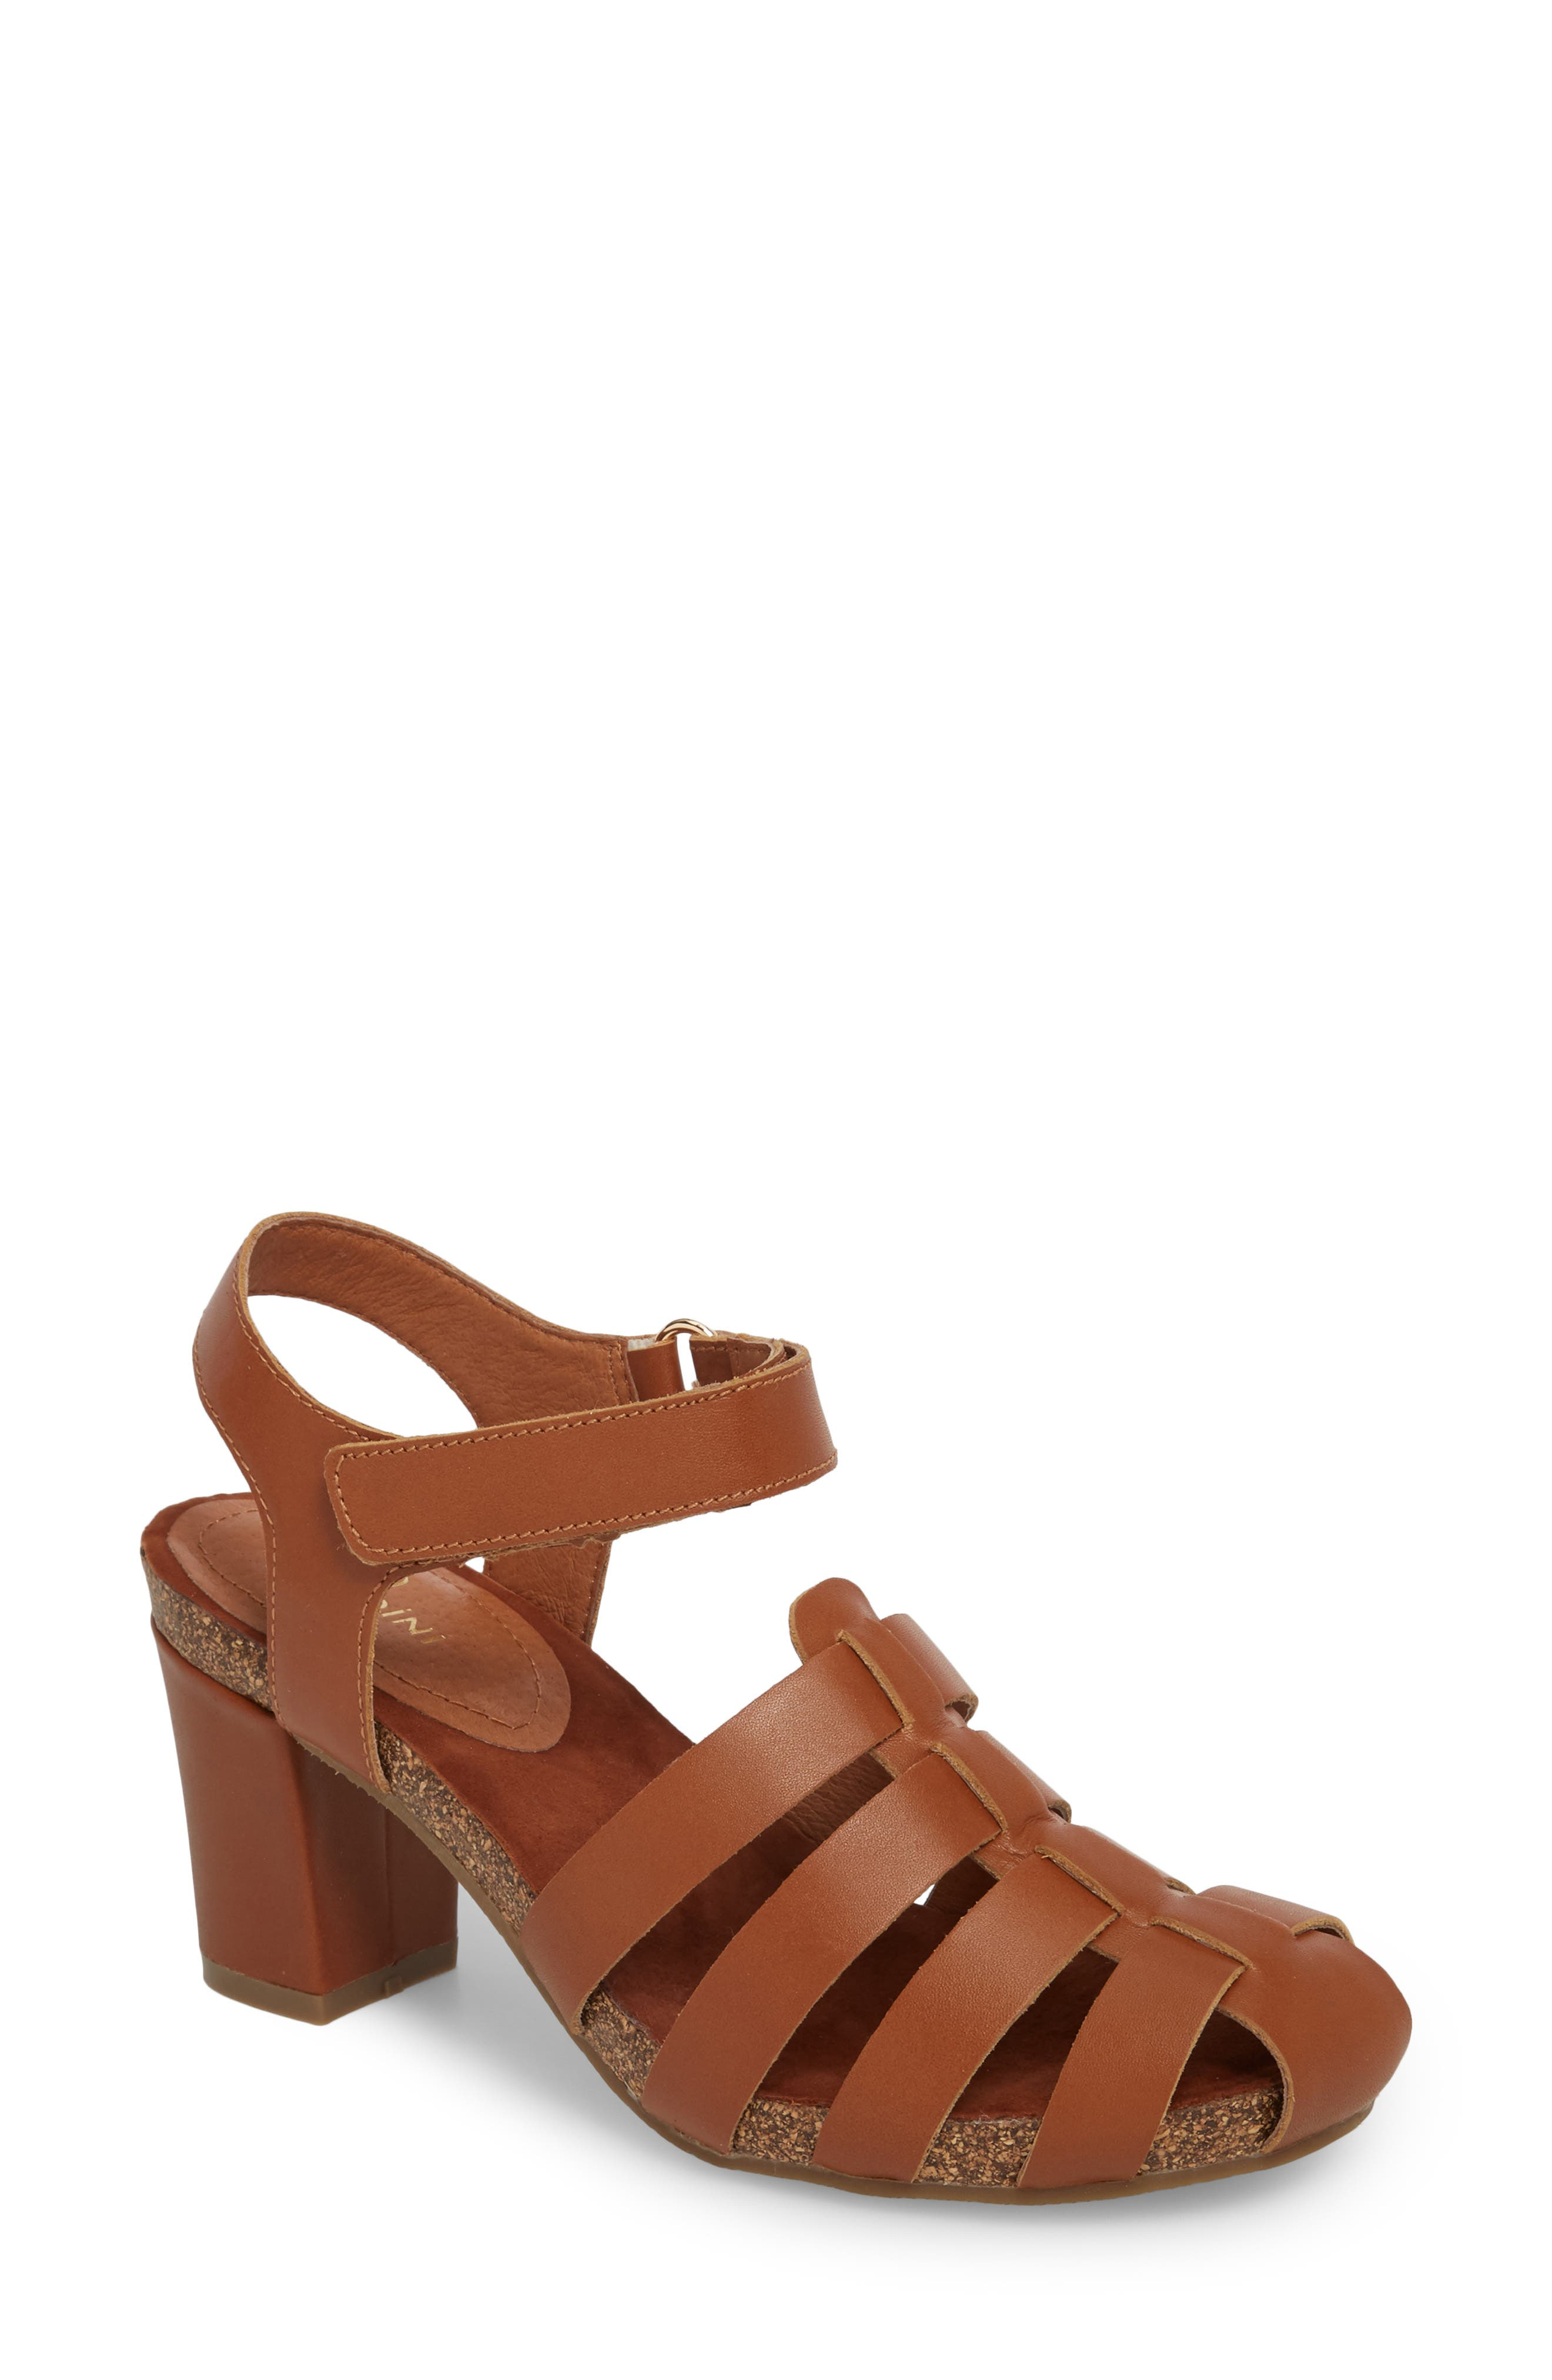 Sudini Carrara Block Heel Sandal, Brown